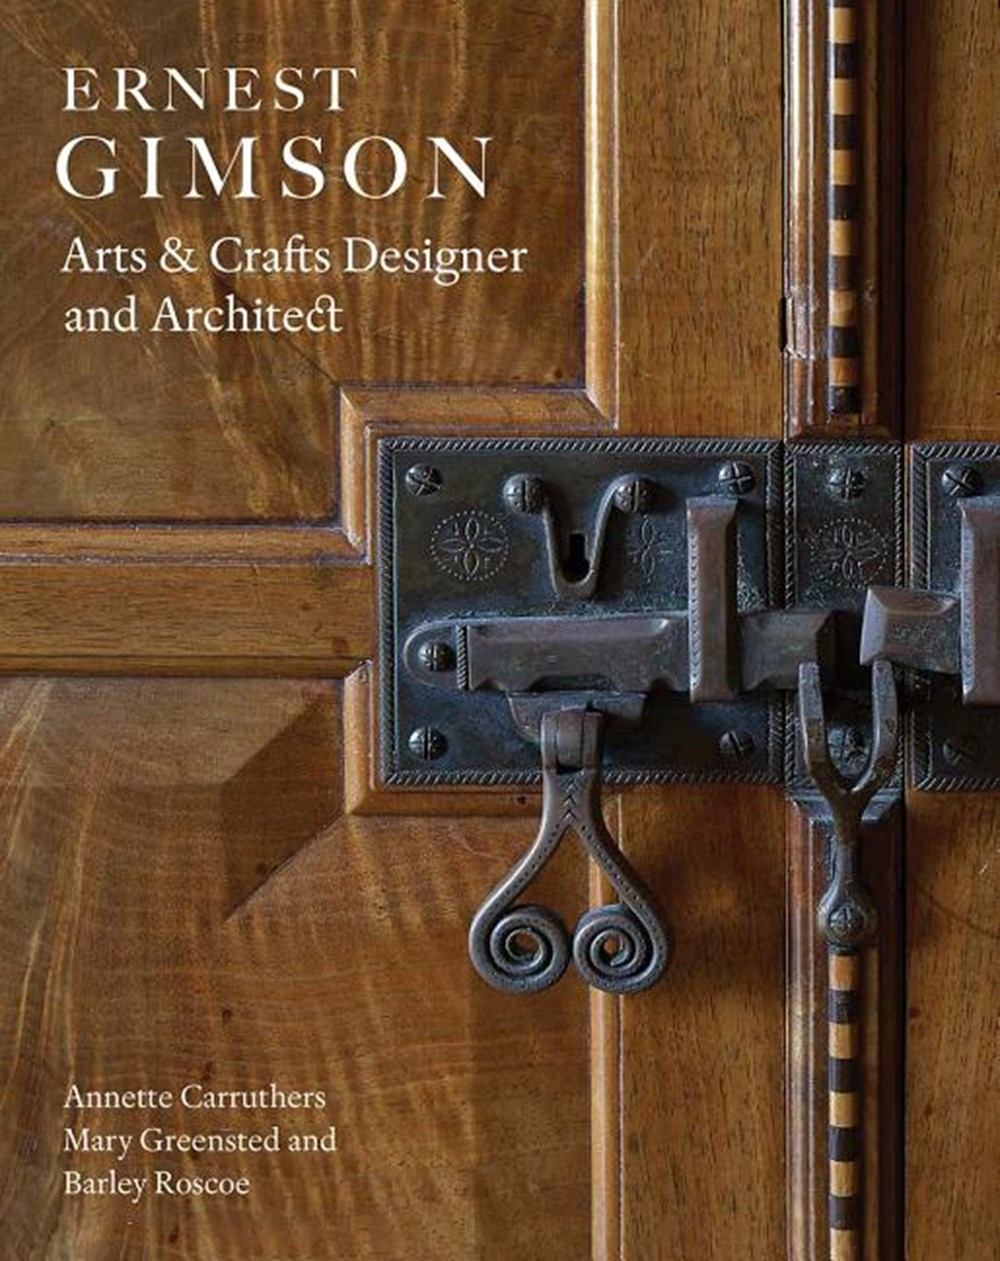 Ernest Gimson Arts & Crafts Designer and Architect